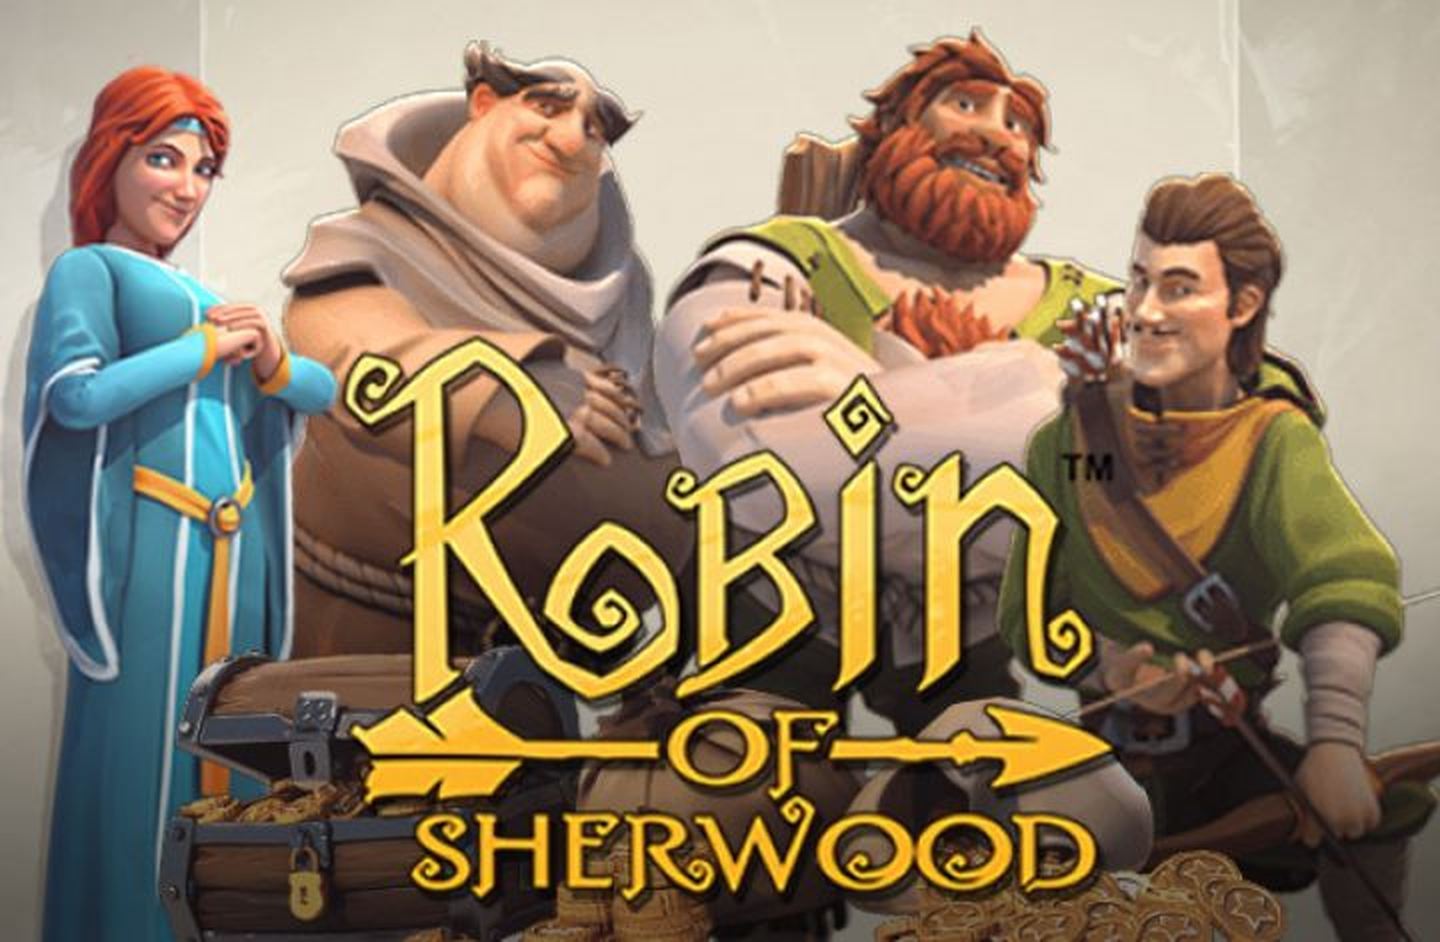 The Robin of sherwood (Rabcat) Online Slot Demo Game by Rabcat